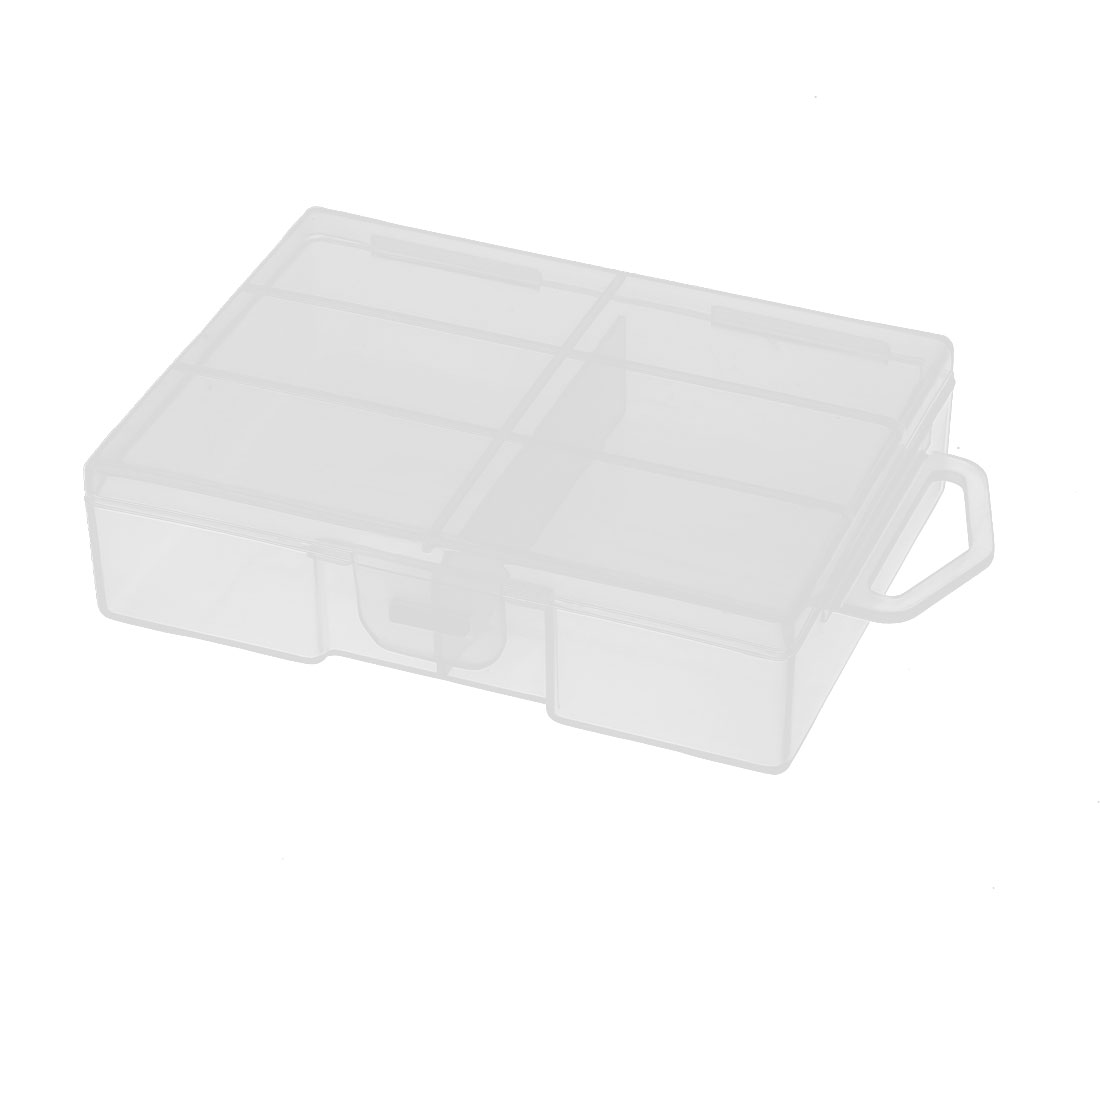 Clear Plastic Rectangle Storage Box Case Container Holder for 24 x AAA Battery